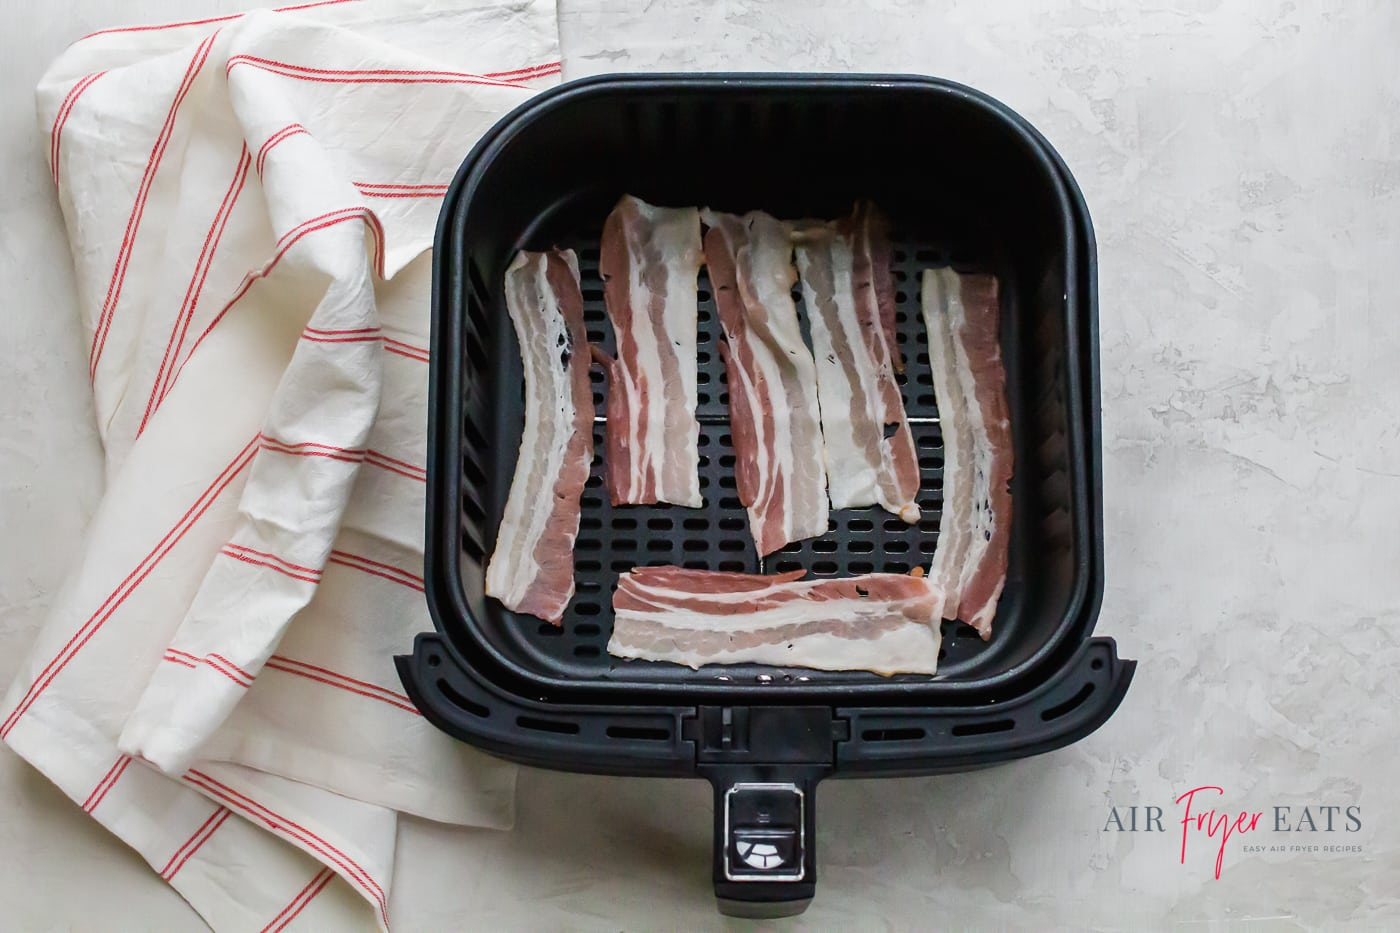 raw pork bacon laying in an air fryer basket with a red and white towel to the left of the basket